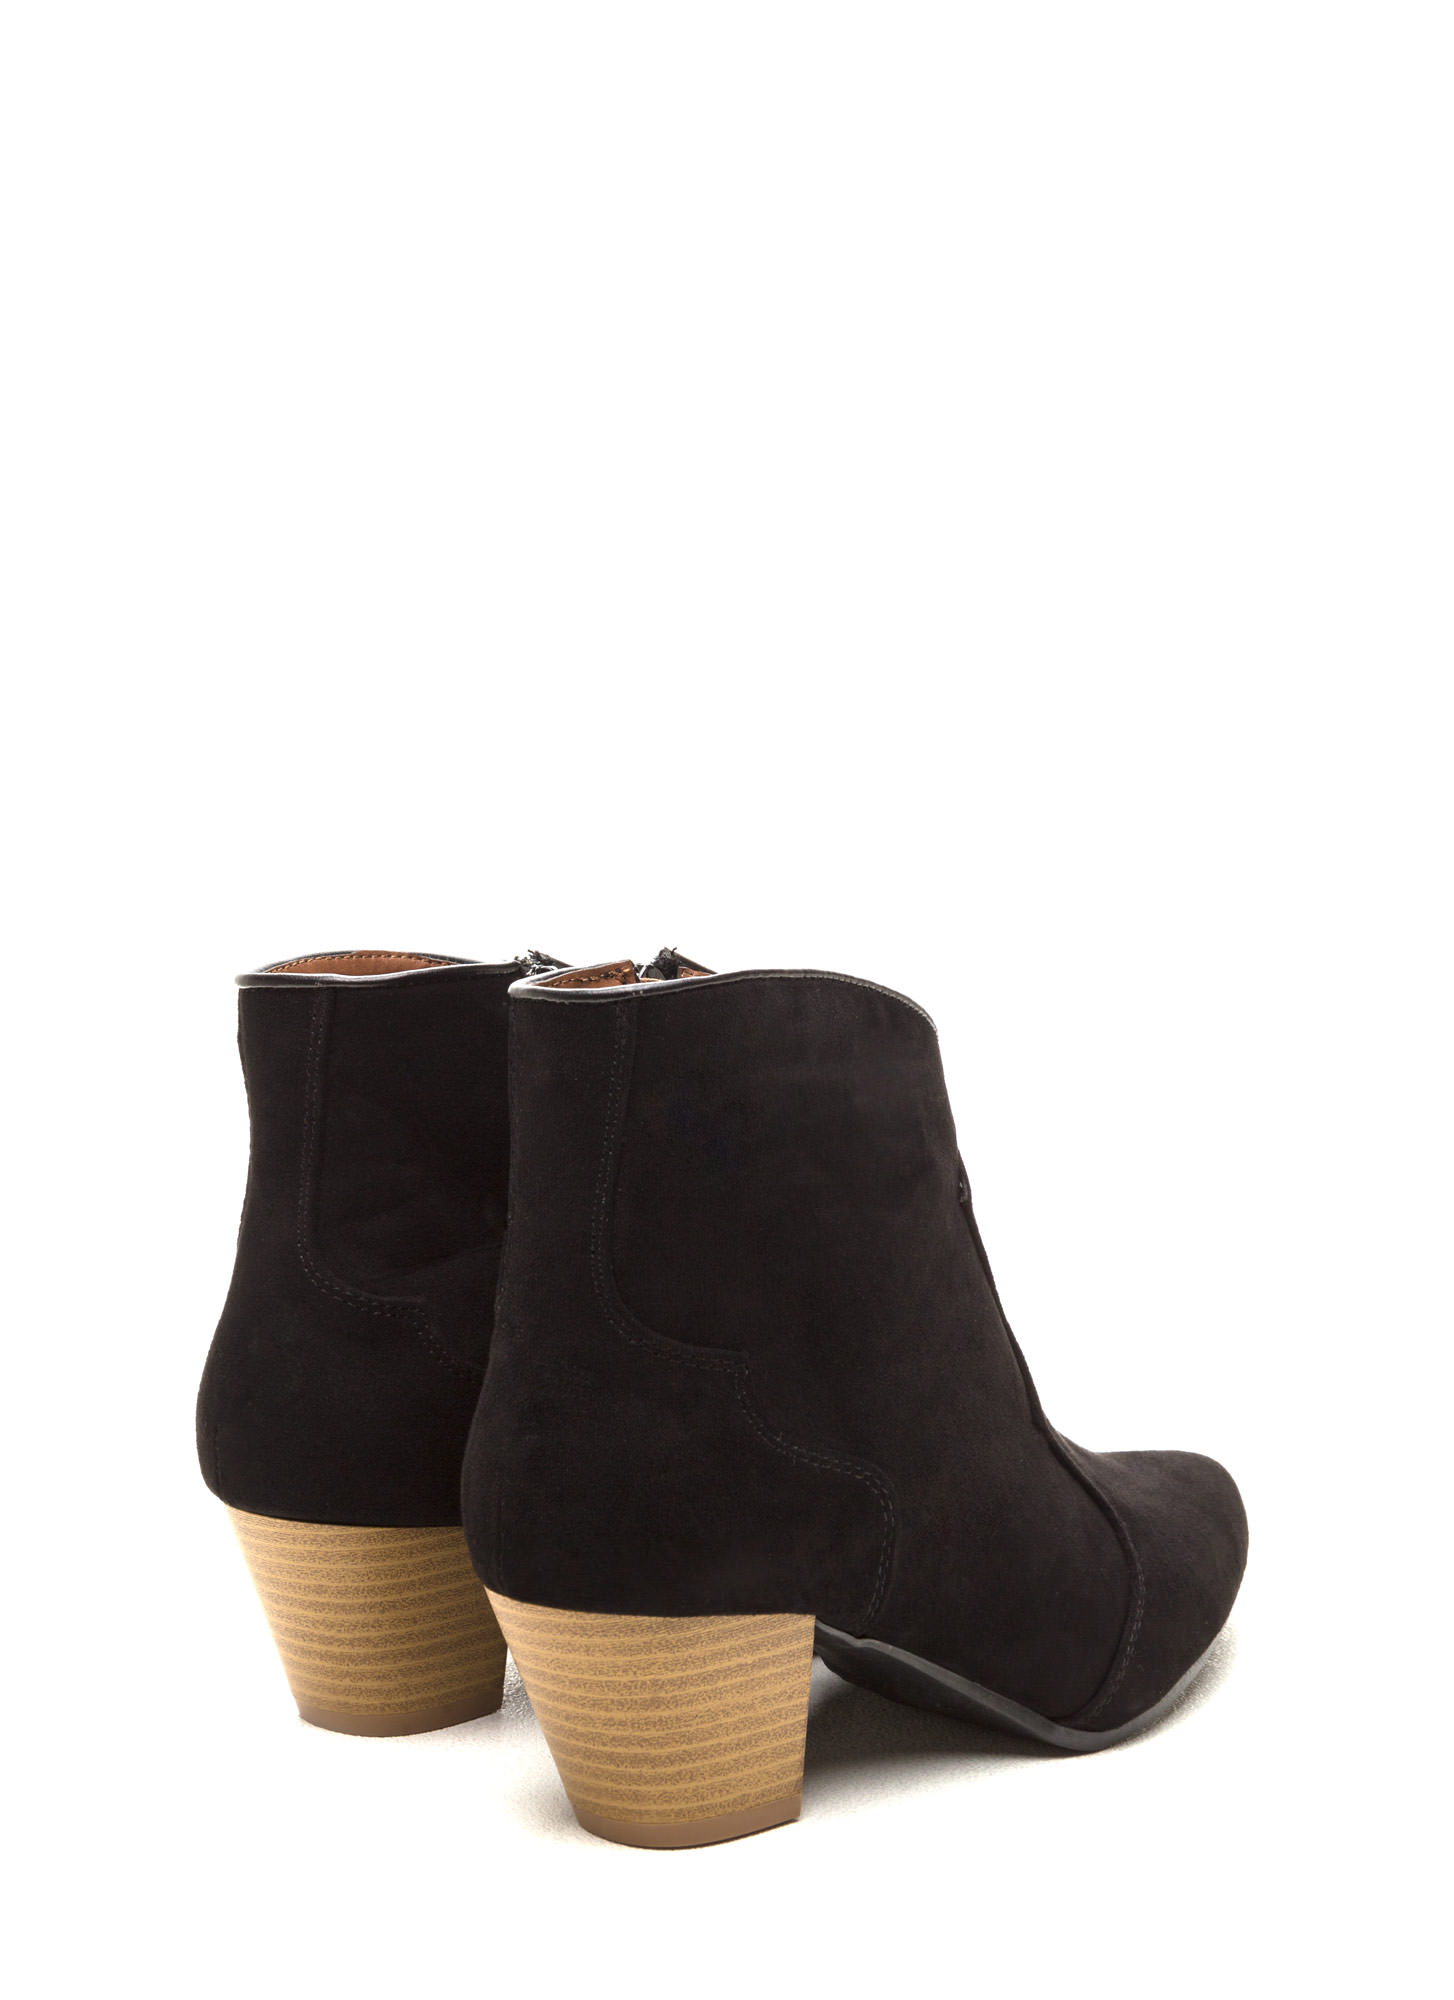 Yeehaw Pointy Faux Suede Booties BLACK